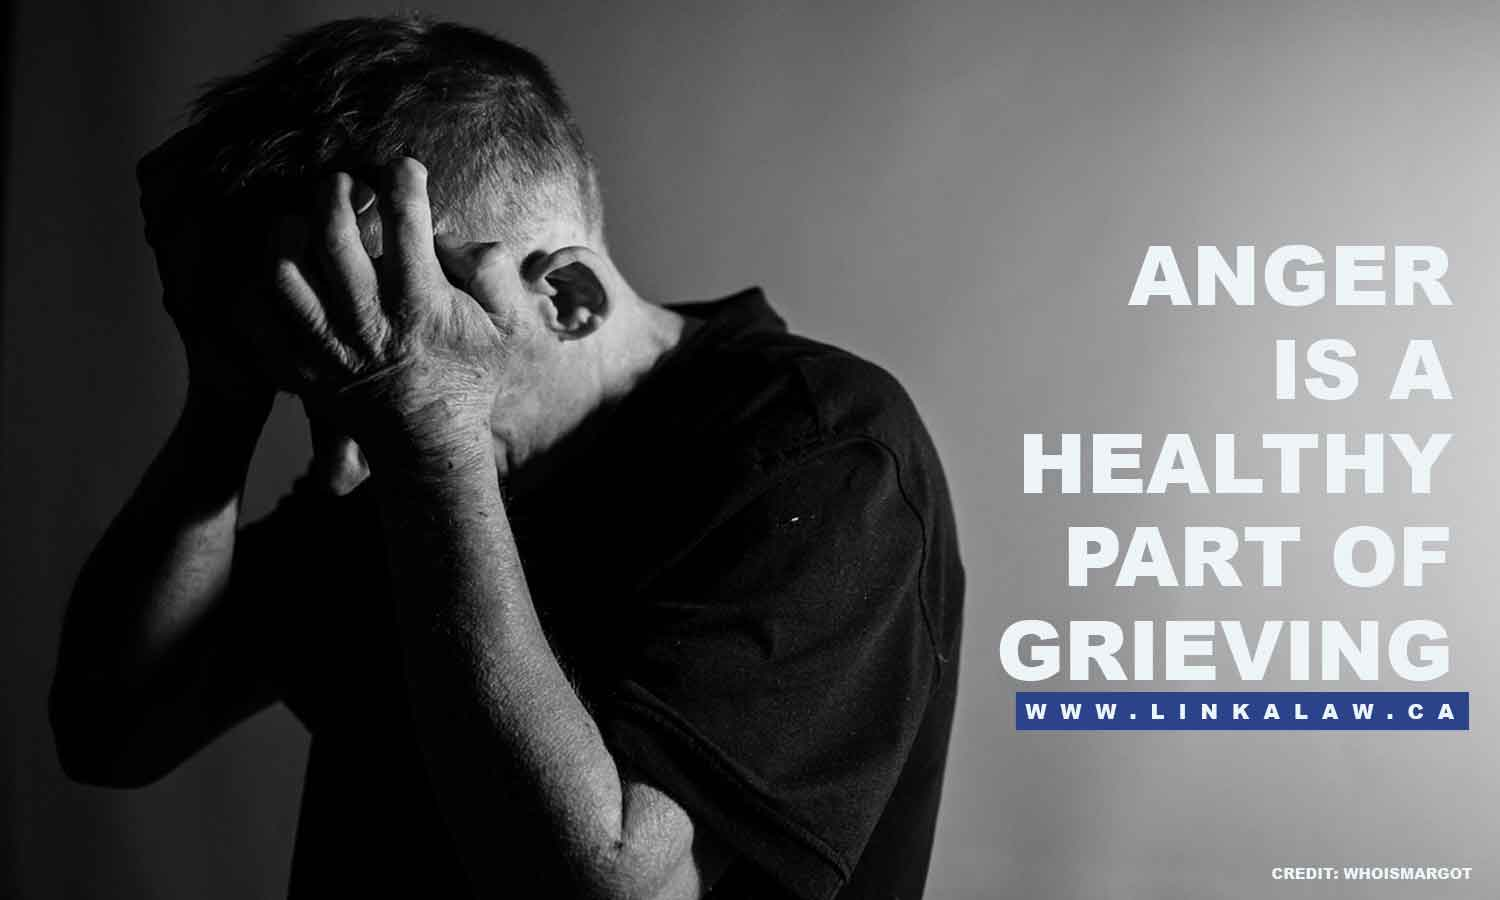 Anger is a healthy part of grieving